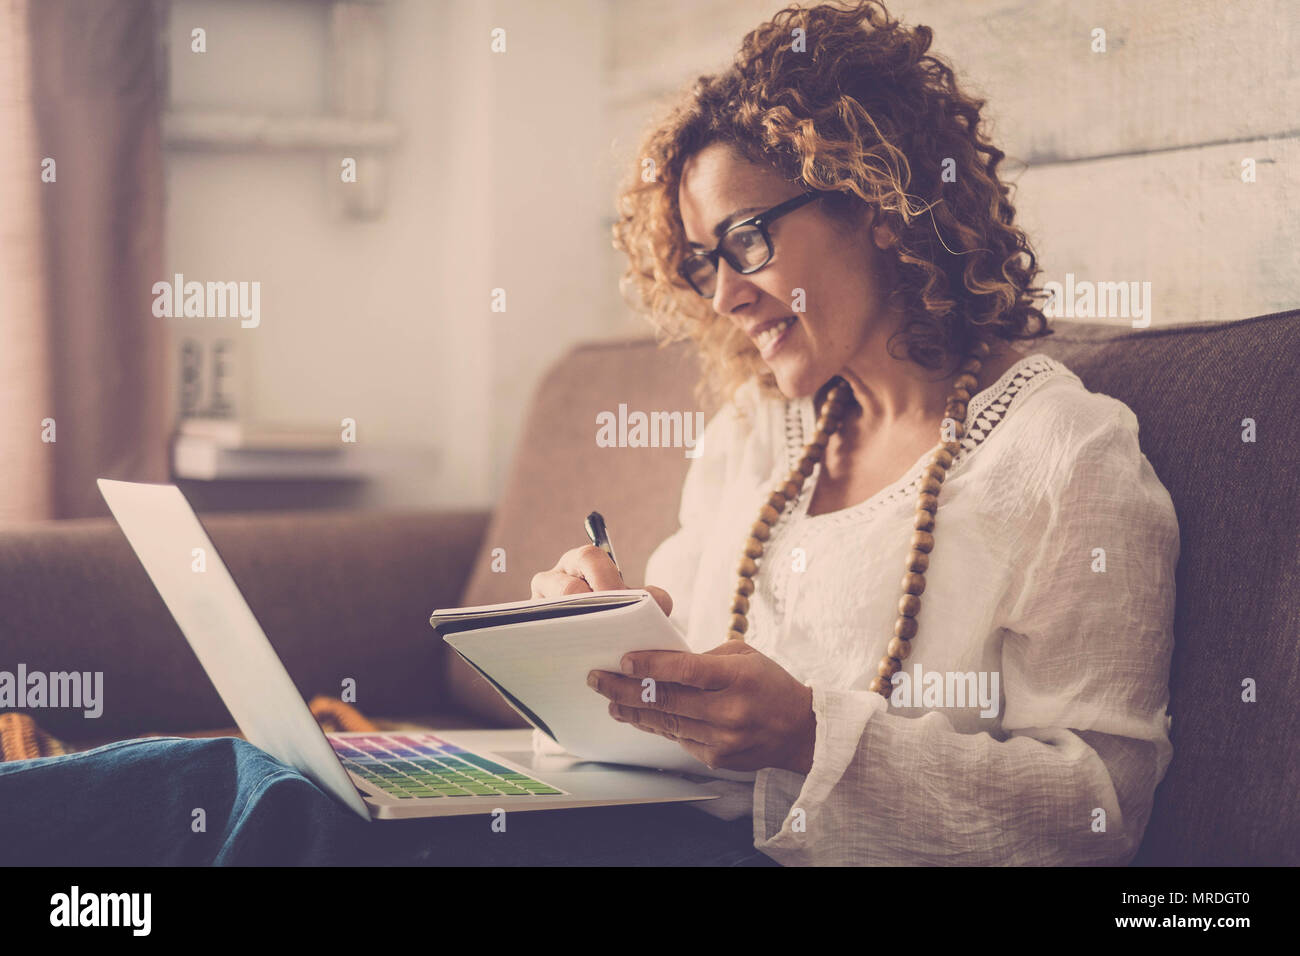 beautiful woman smile and write notes on paper working on a laptop freedom from office at home. alternative lifestyle and place to work on. vintage re - Stock Image